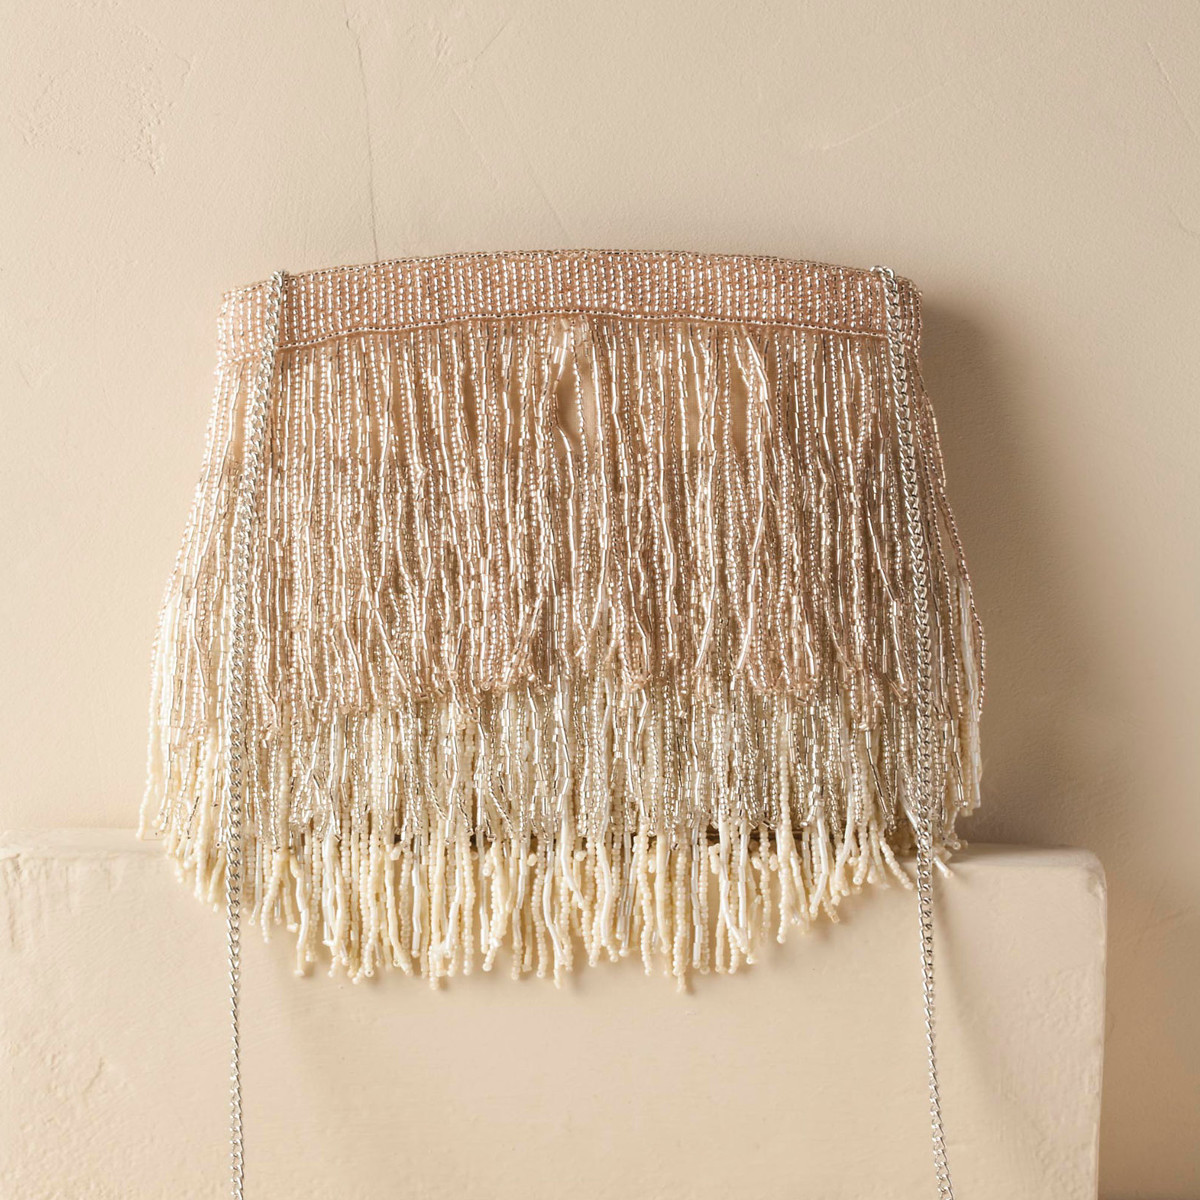 Ivory bohemian clutch with extensive fringe and a strap photo